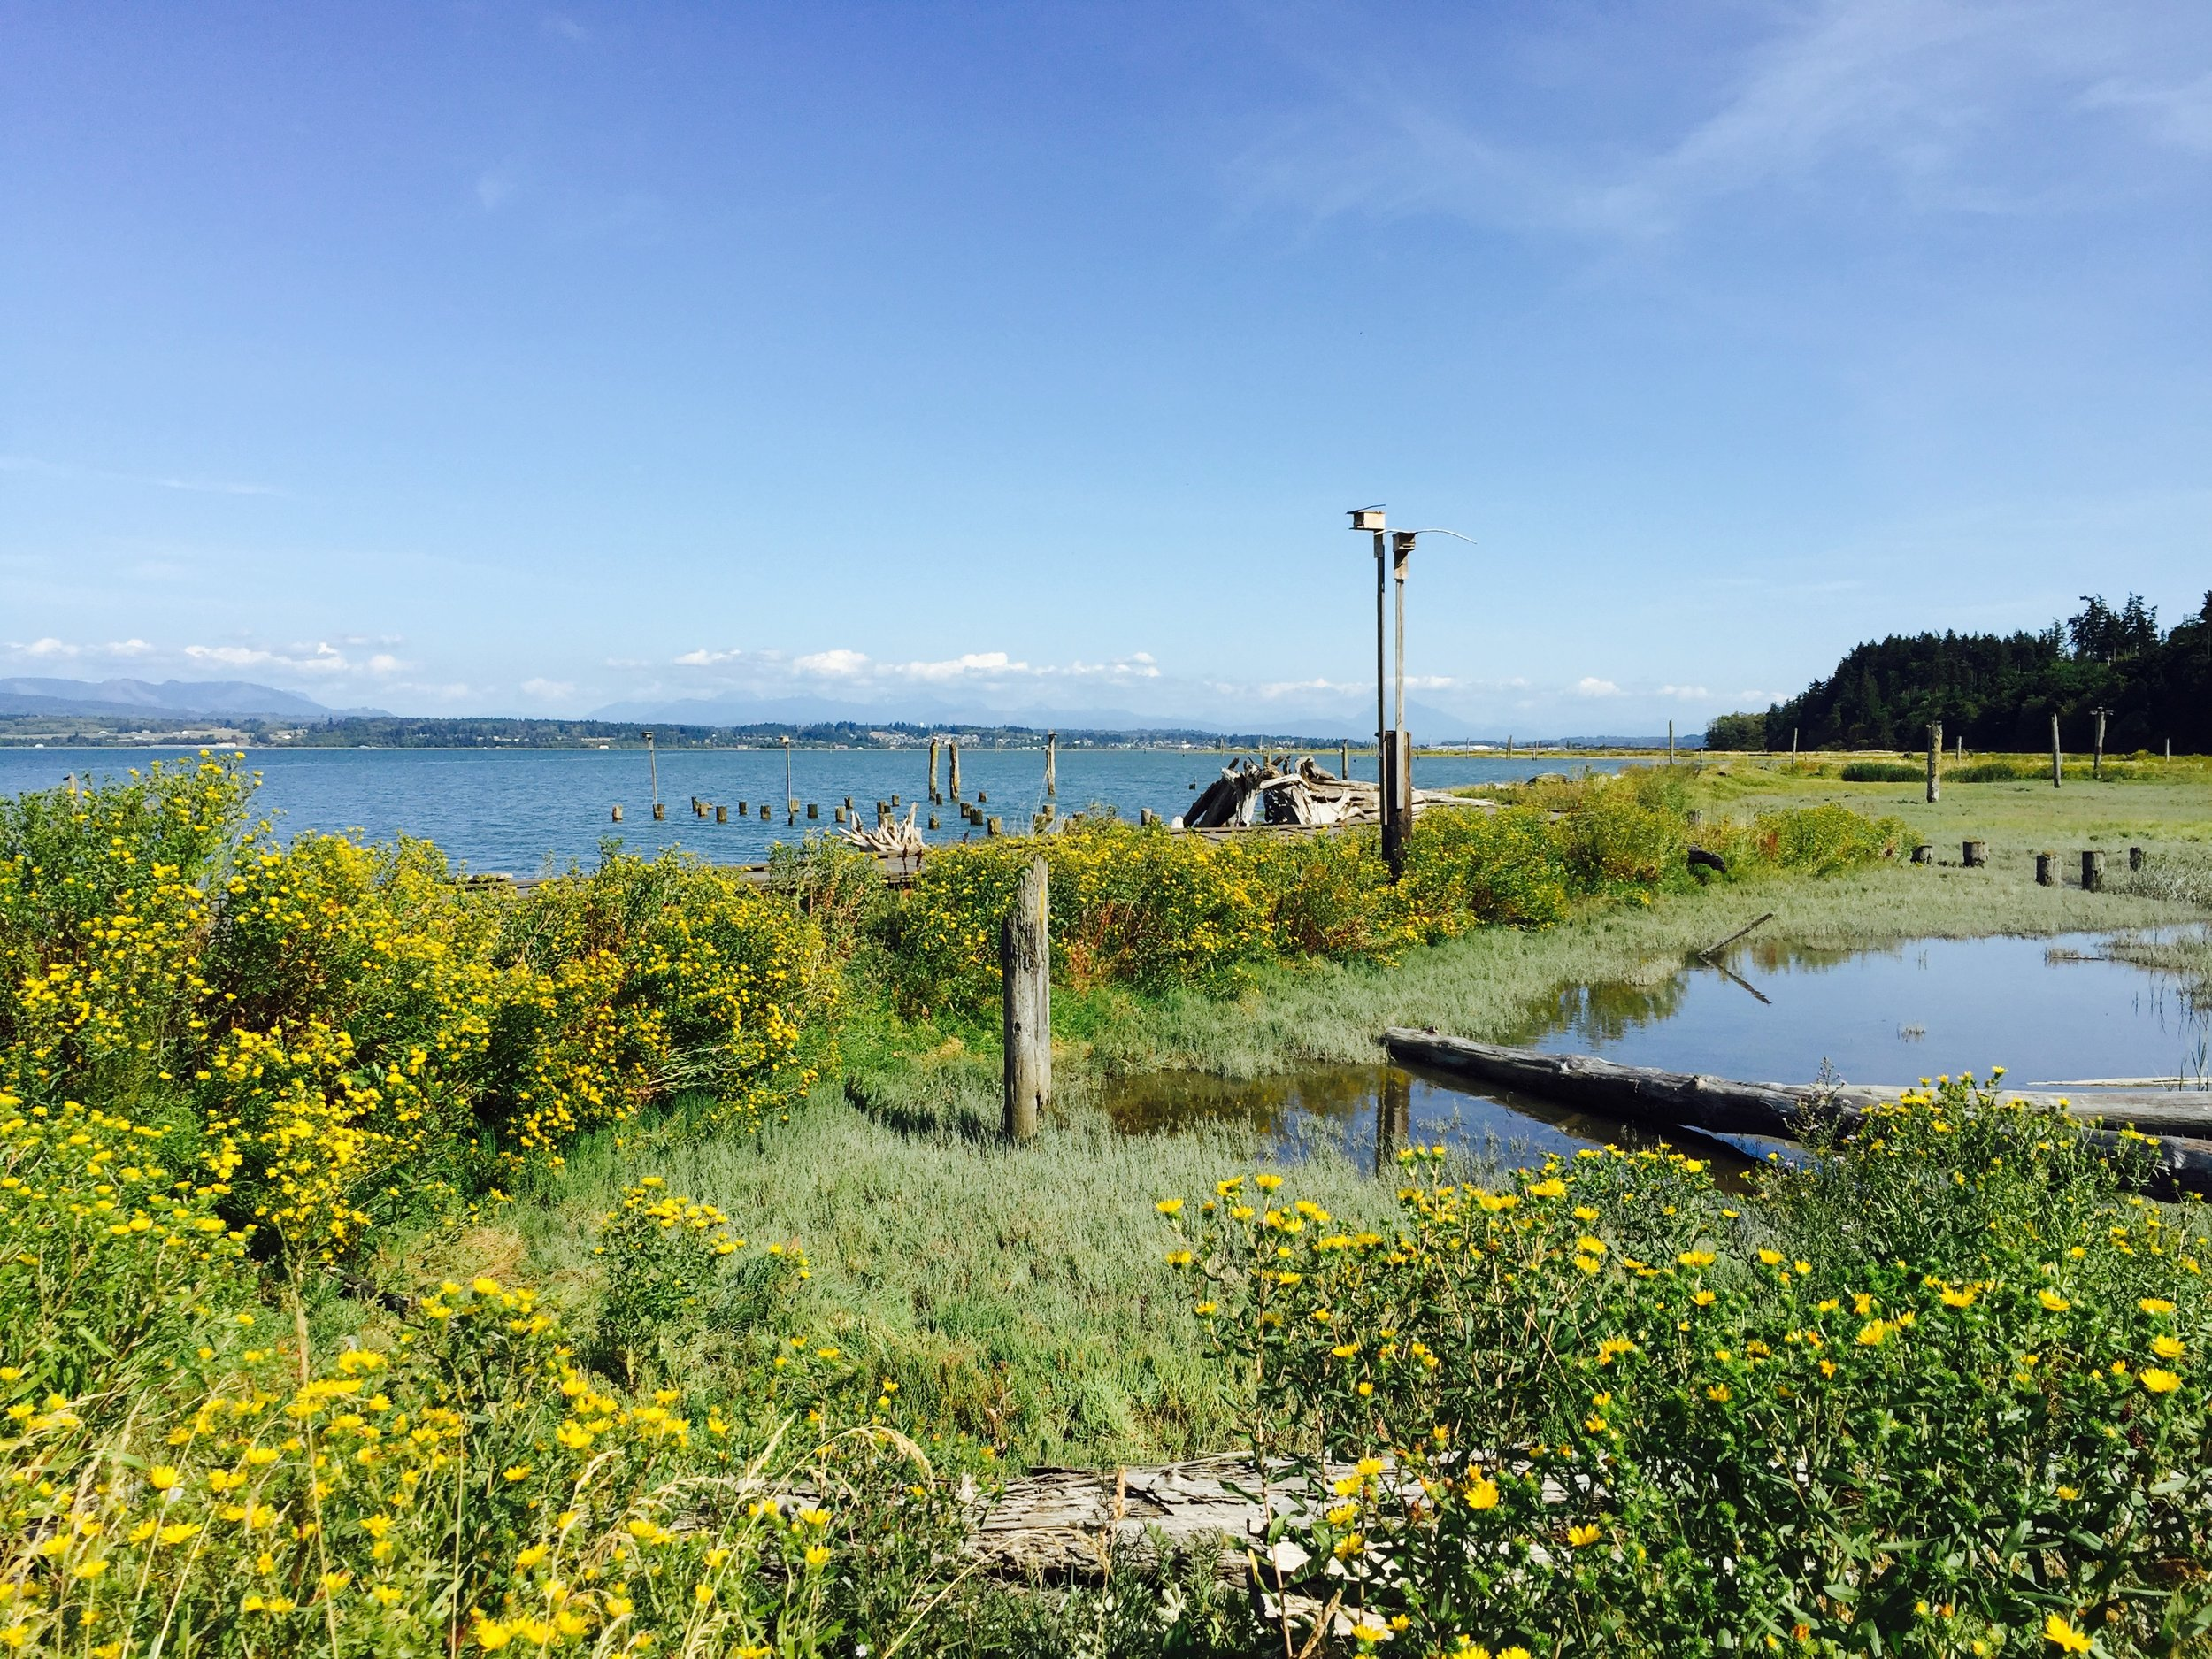 U tsalady Point on Camano Island